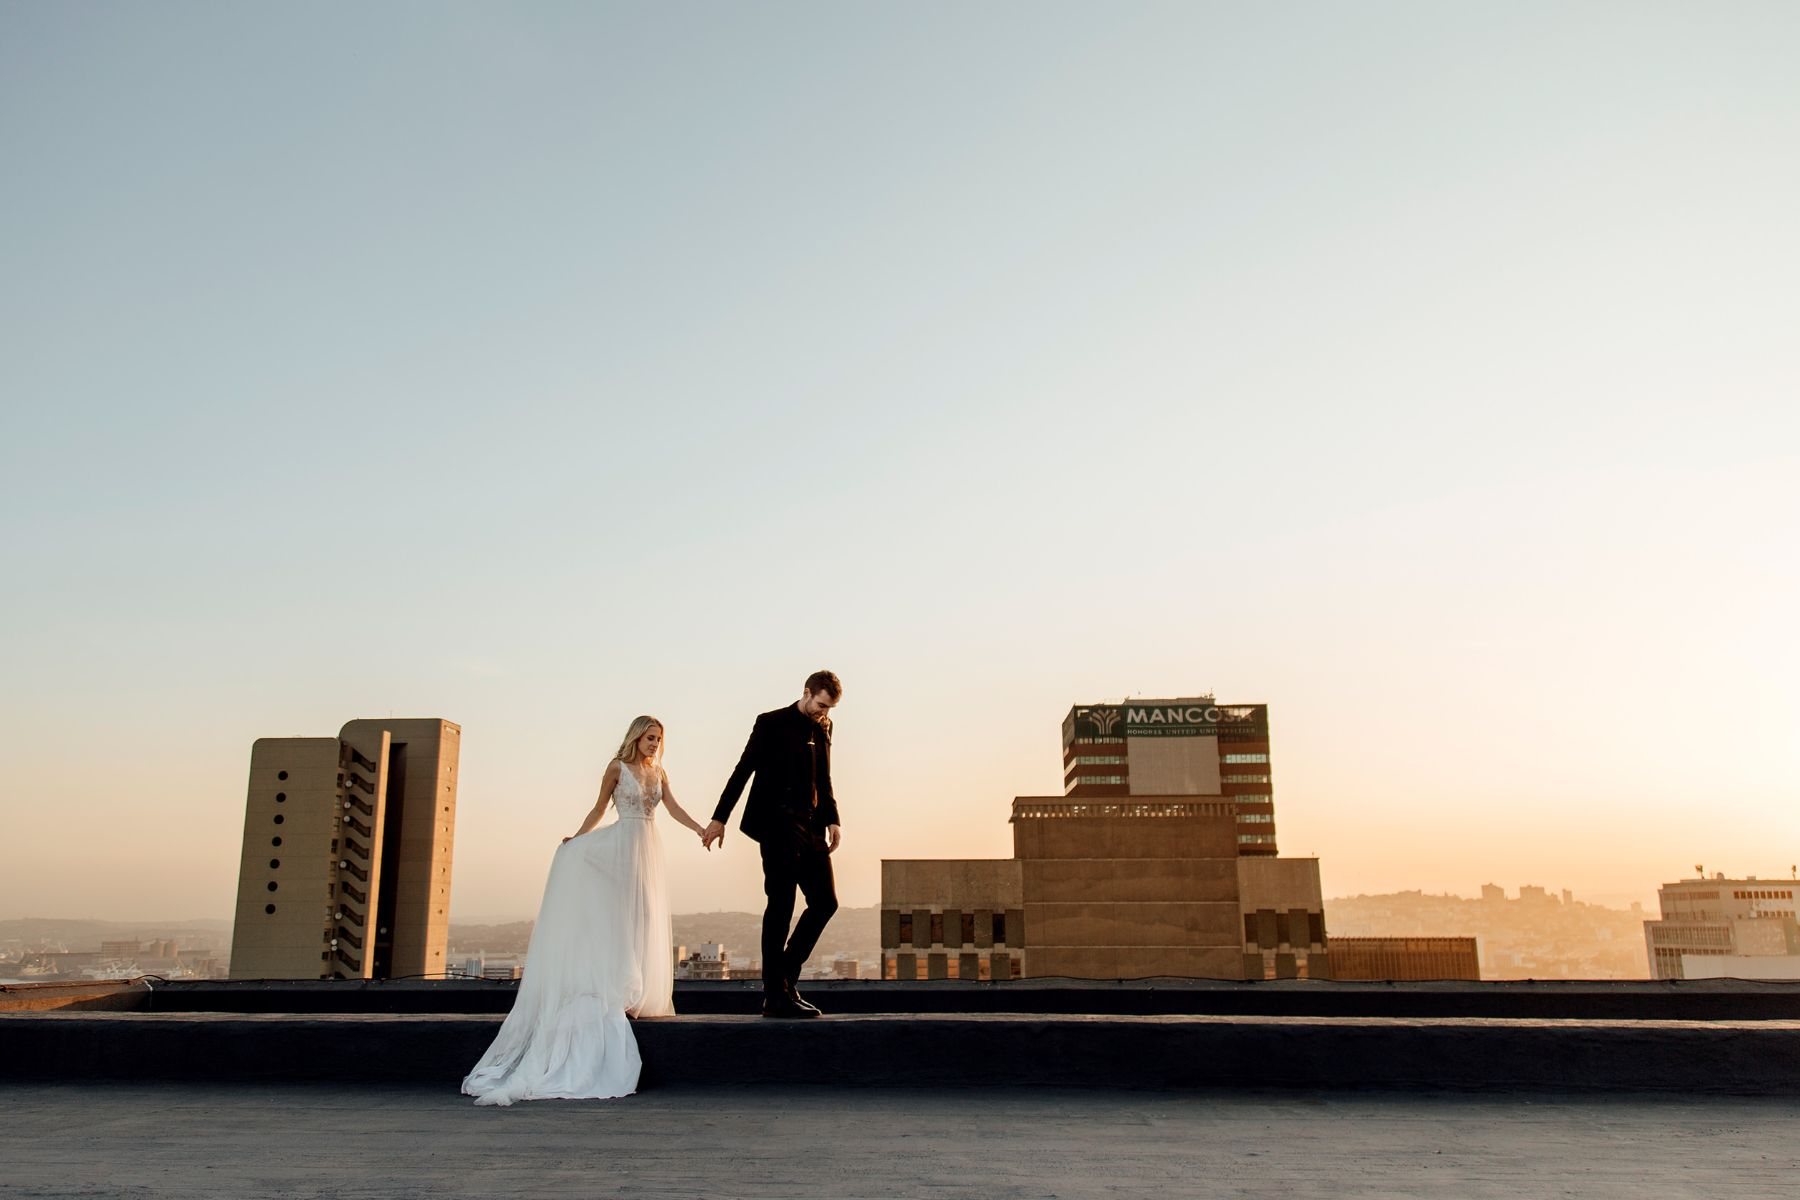 Editorial style wedding portfolio image of couple walking hand-in-hand on top of Durban rooftop with sunset in the background, wearing Hanrie Lues gown